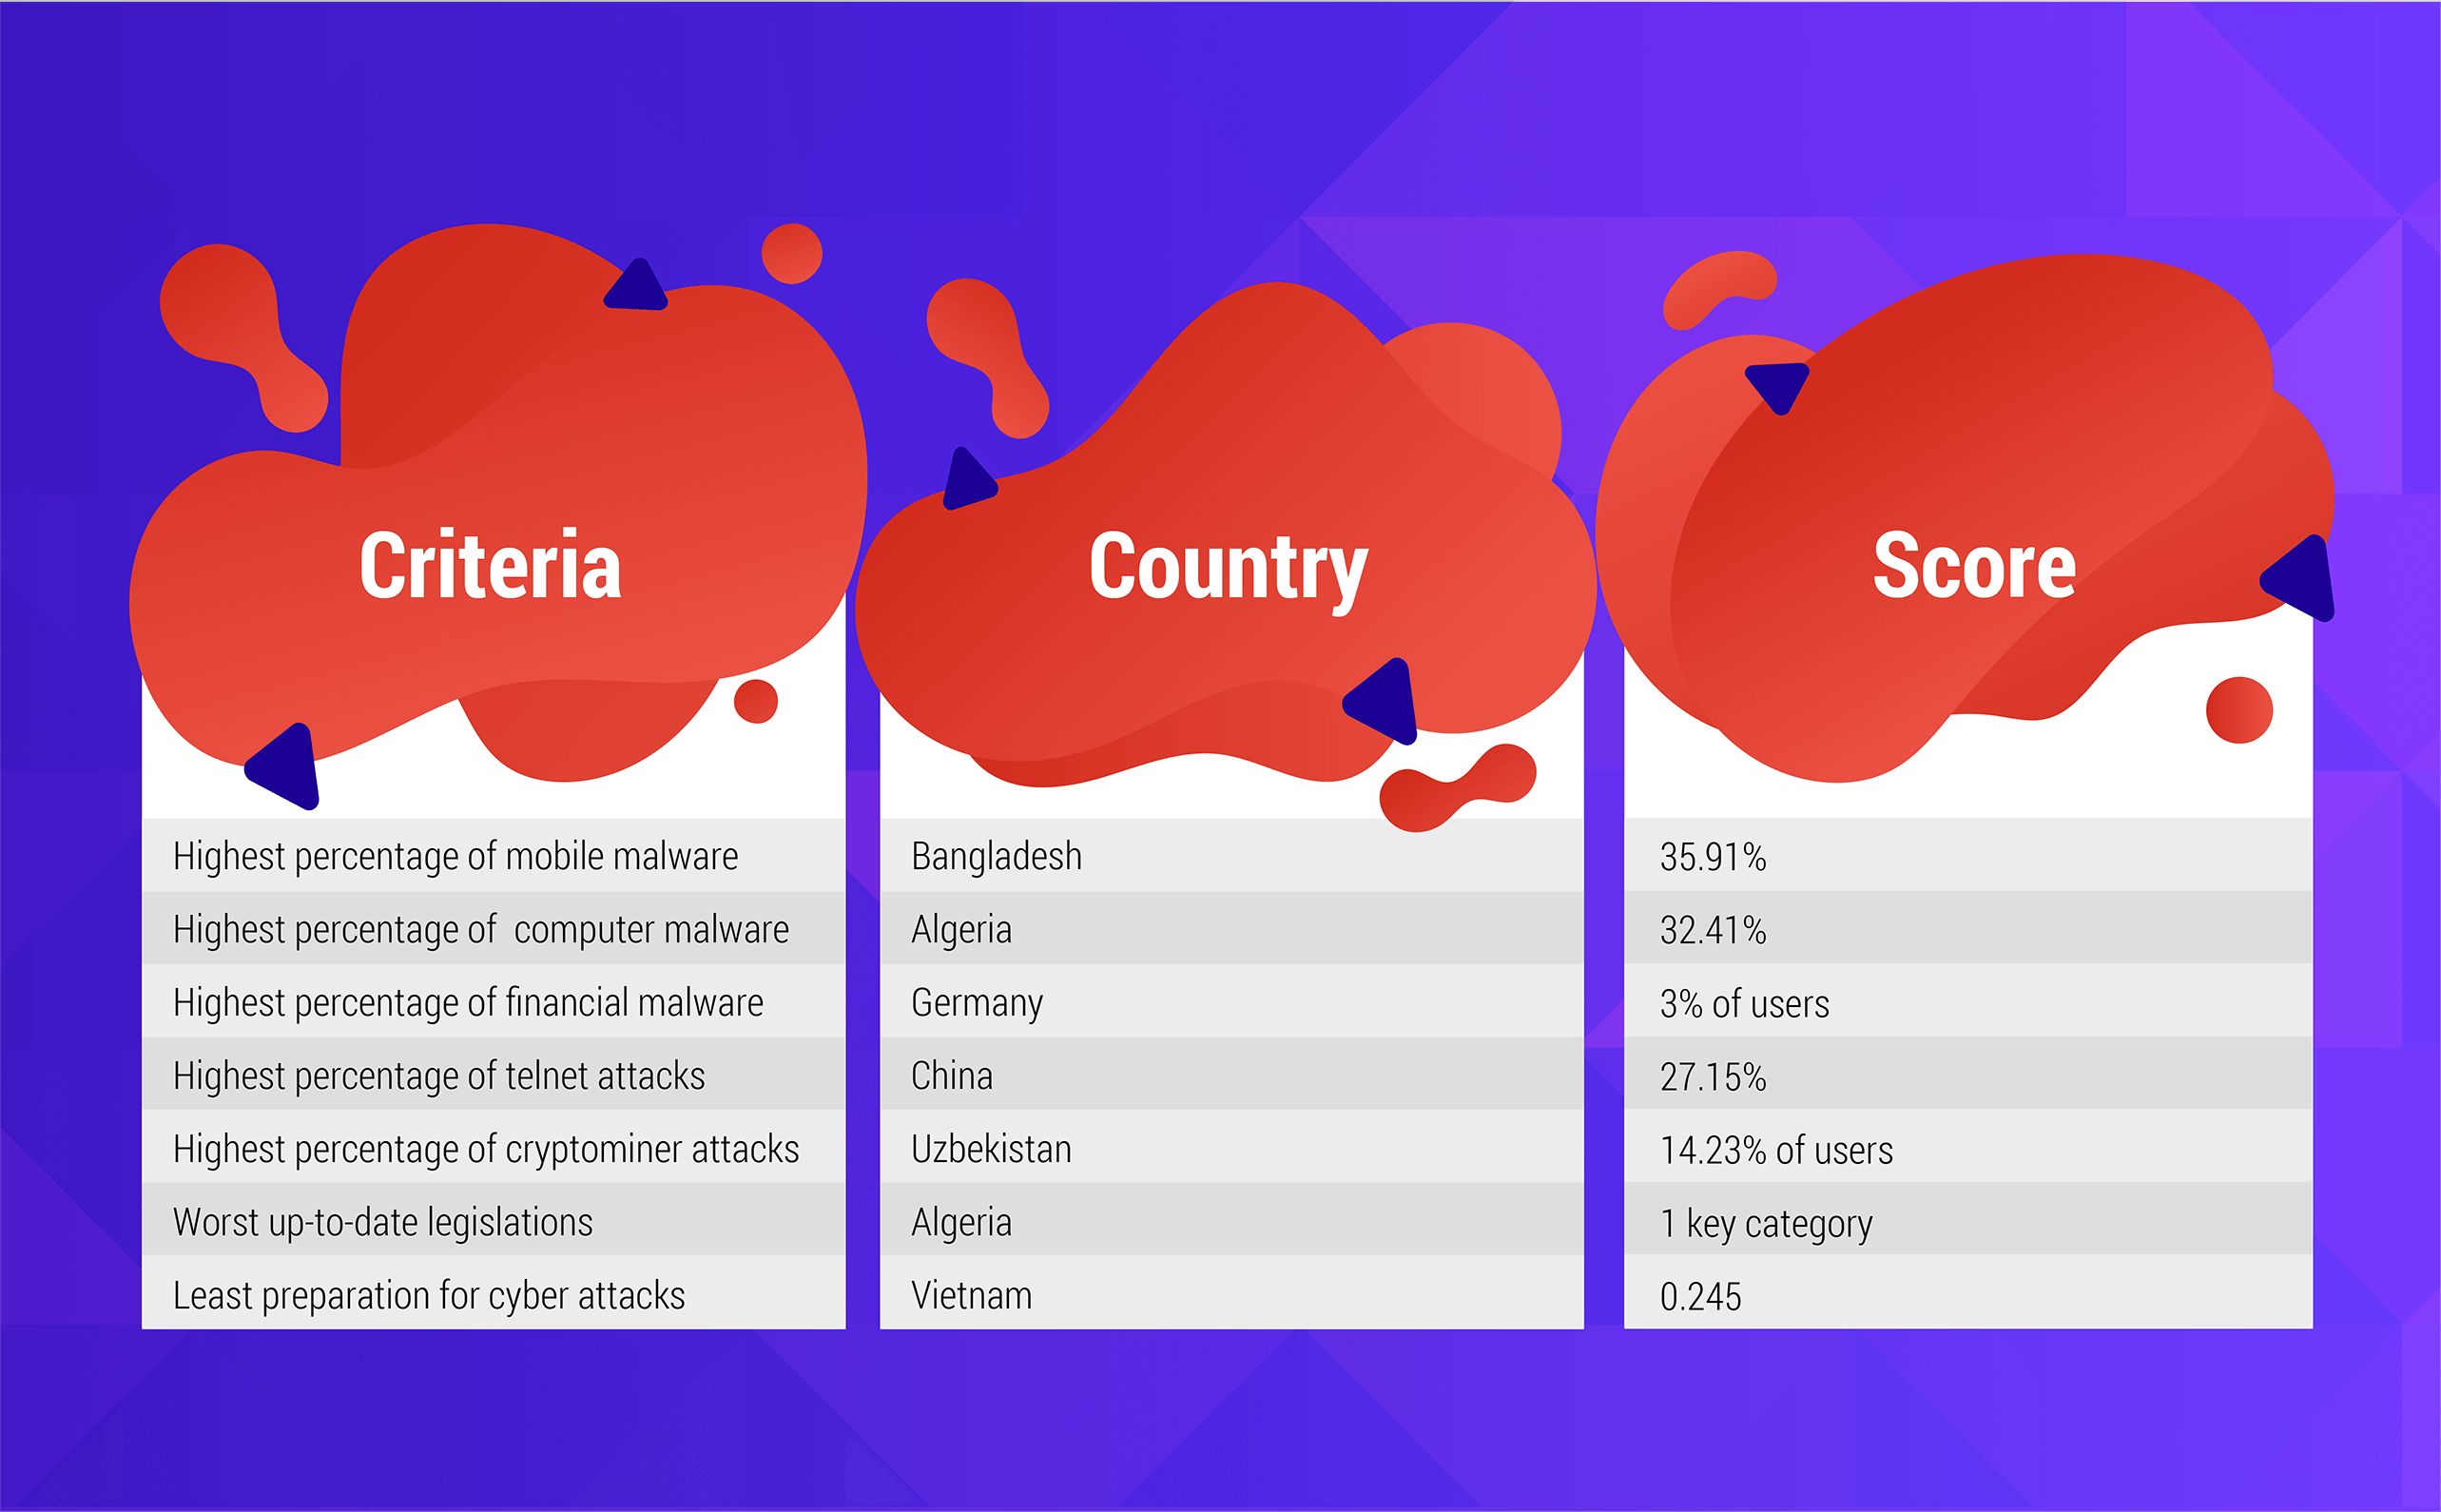 Least cybersecure countries in the world